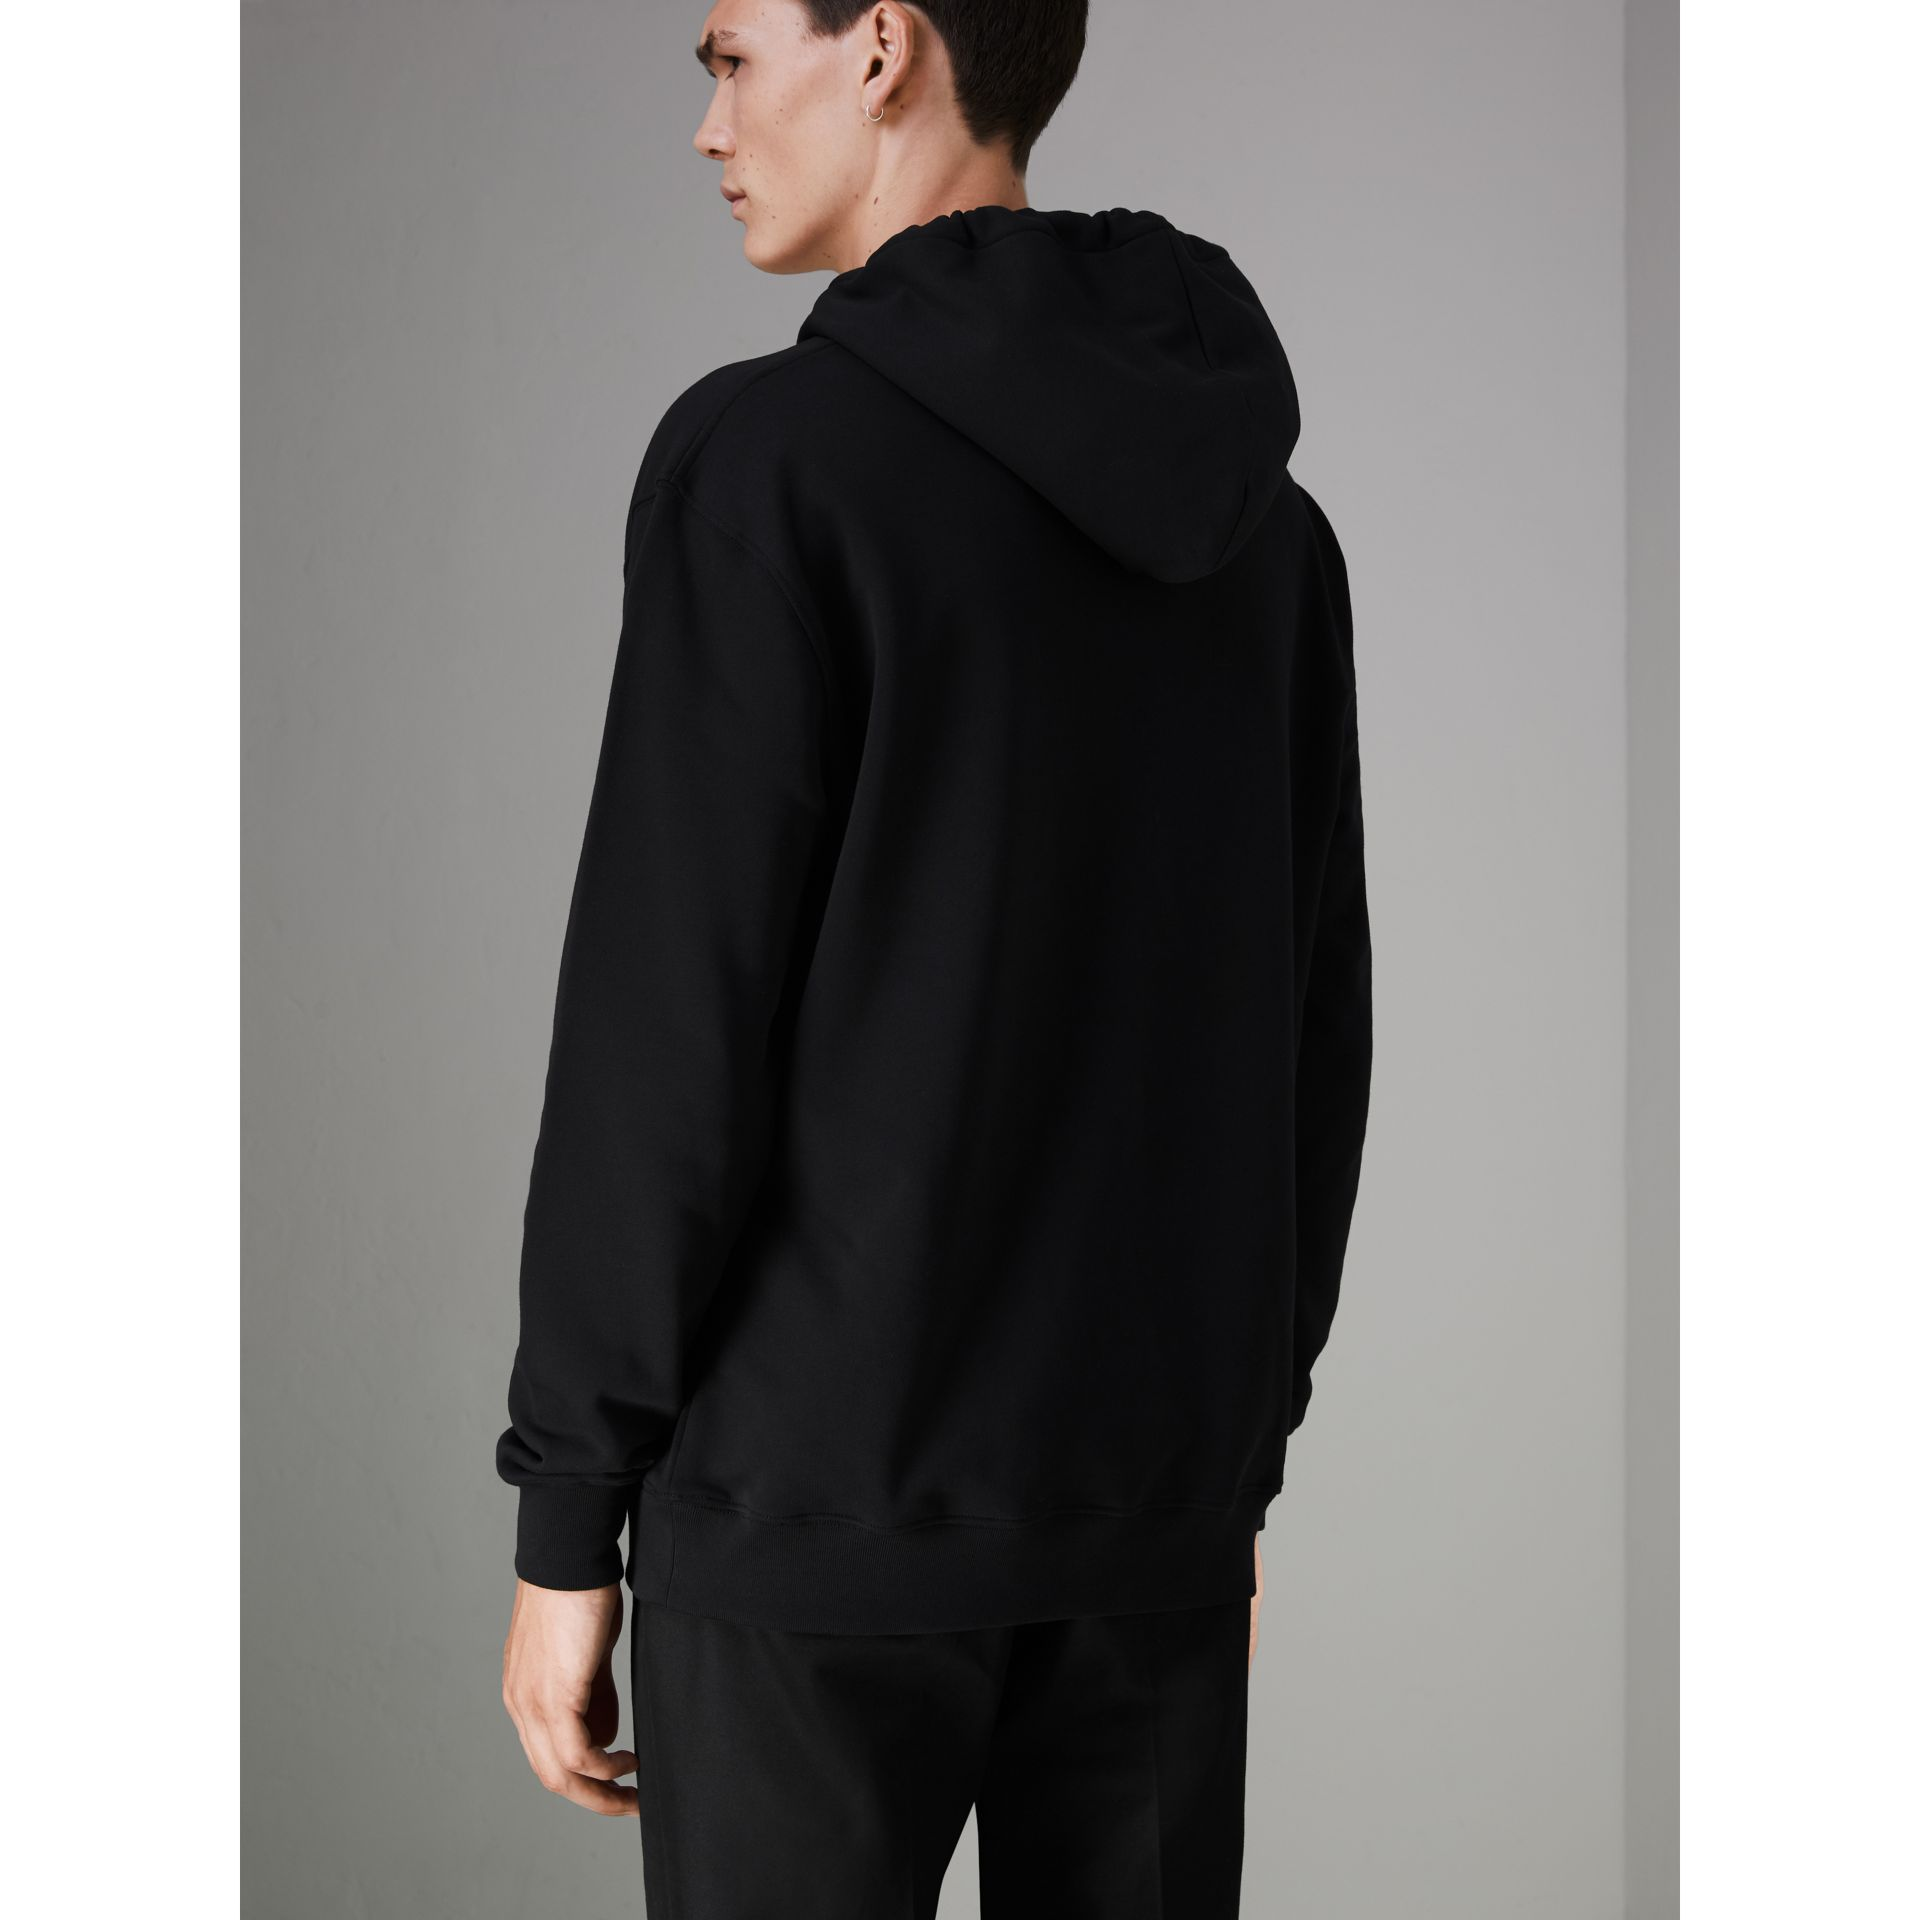 Ticket Print Pocket Cotton Jersey Hoodie in Black - Men | Burberry - gallery image 2